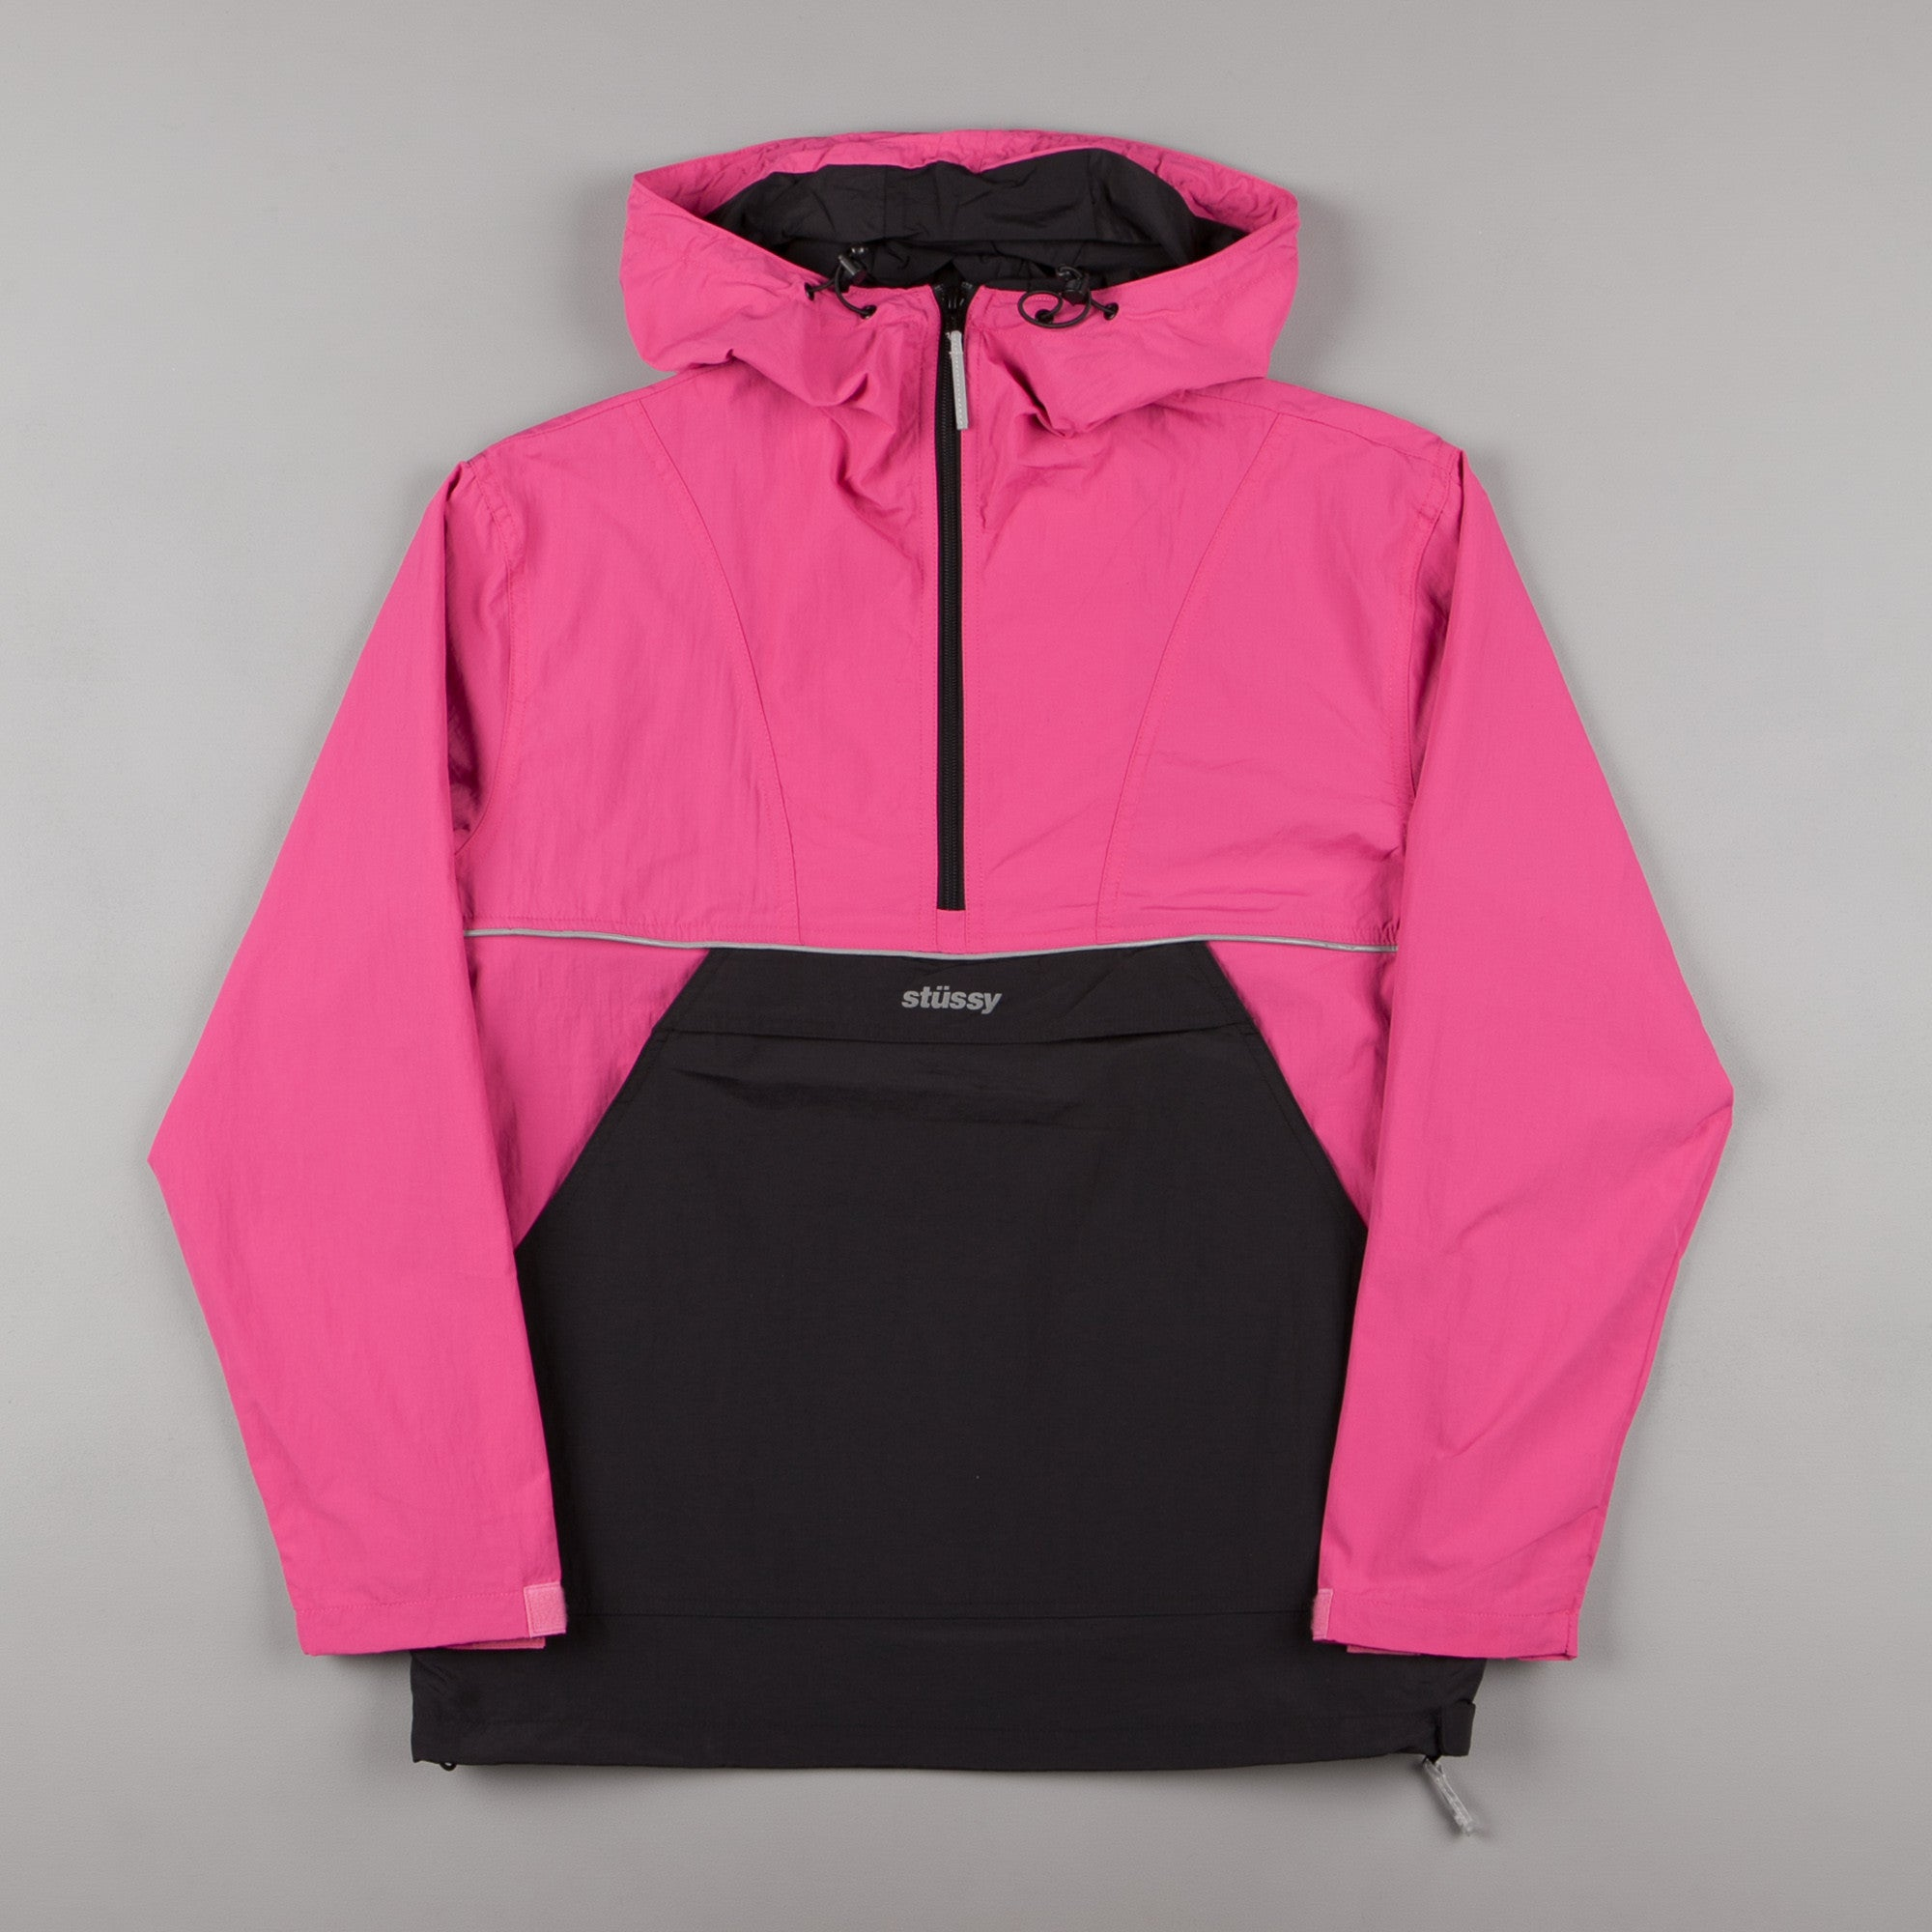 Stussy Reflective Sports Pullover Jacket - Berry